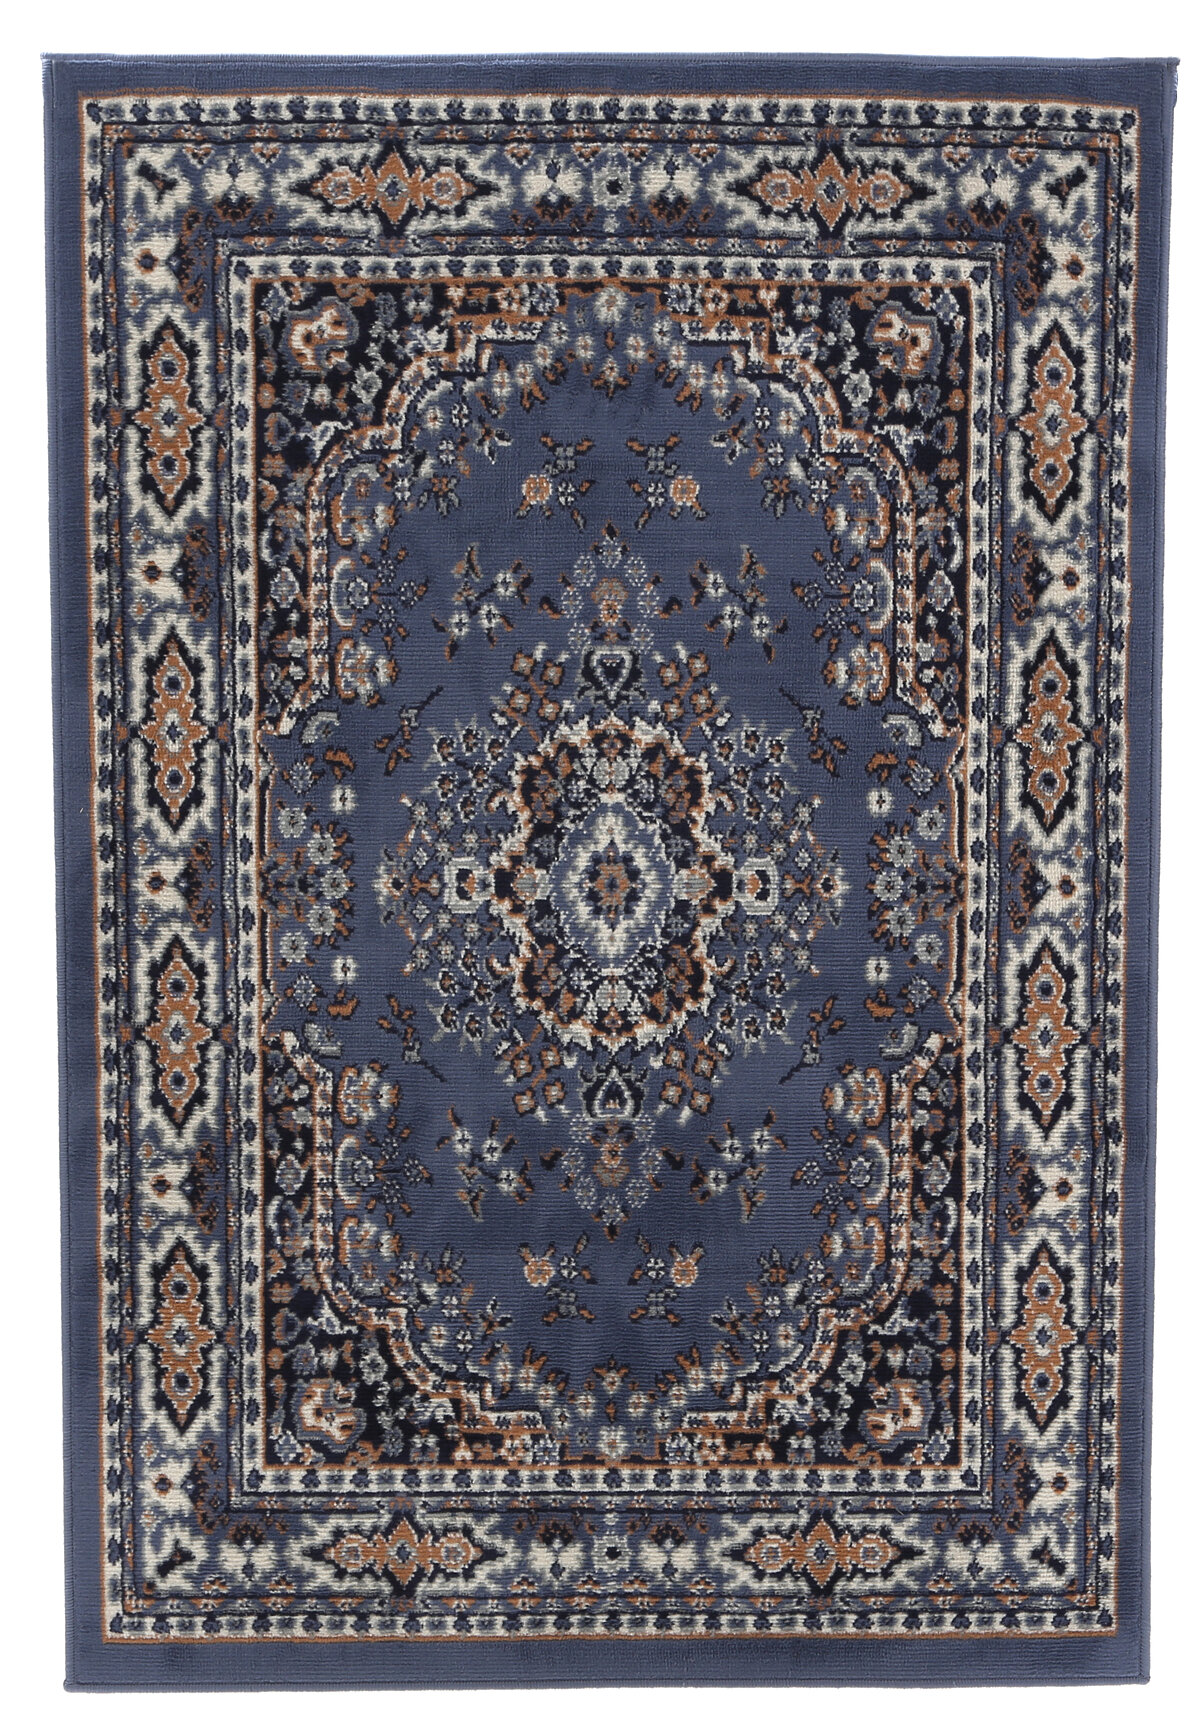 Country Rug Rug Idea Decorate French Country Rugs